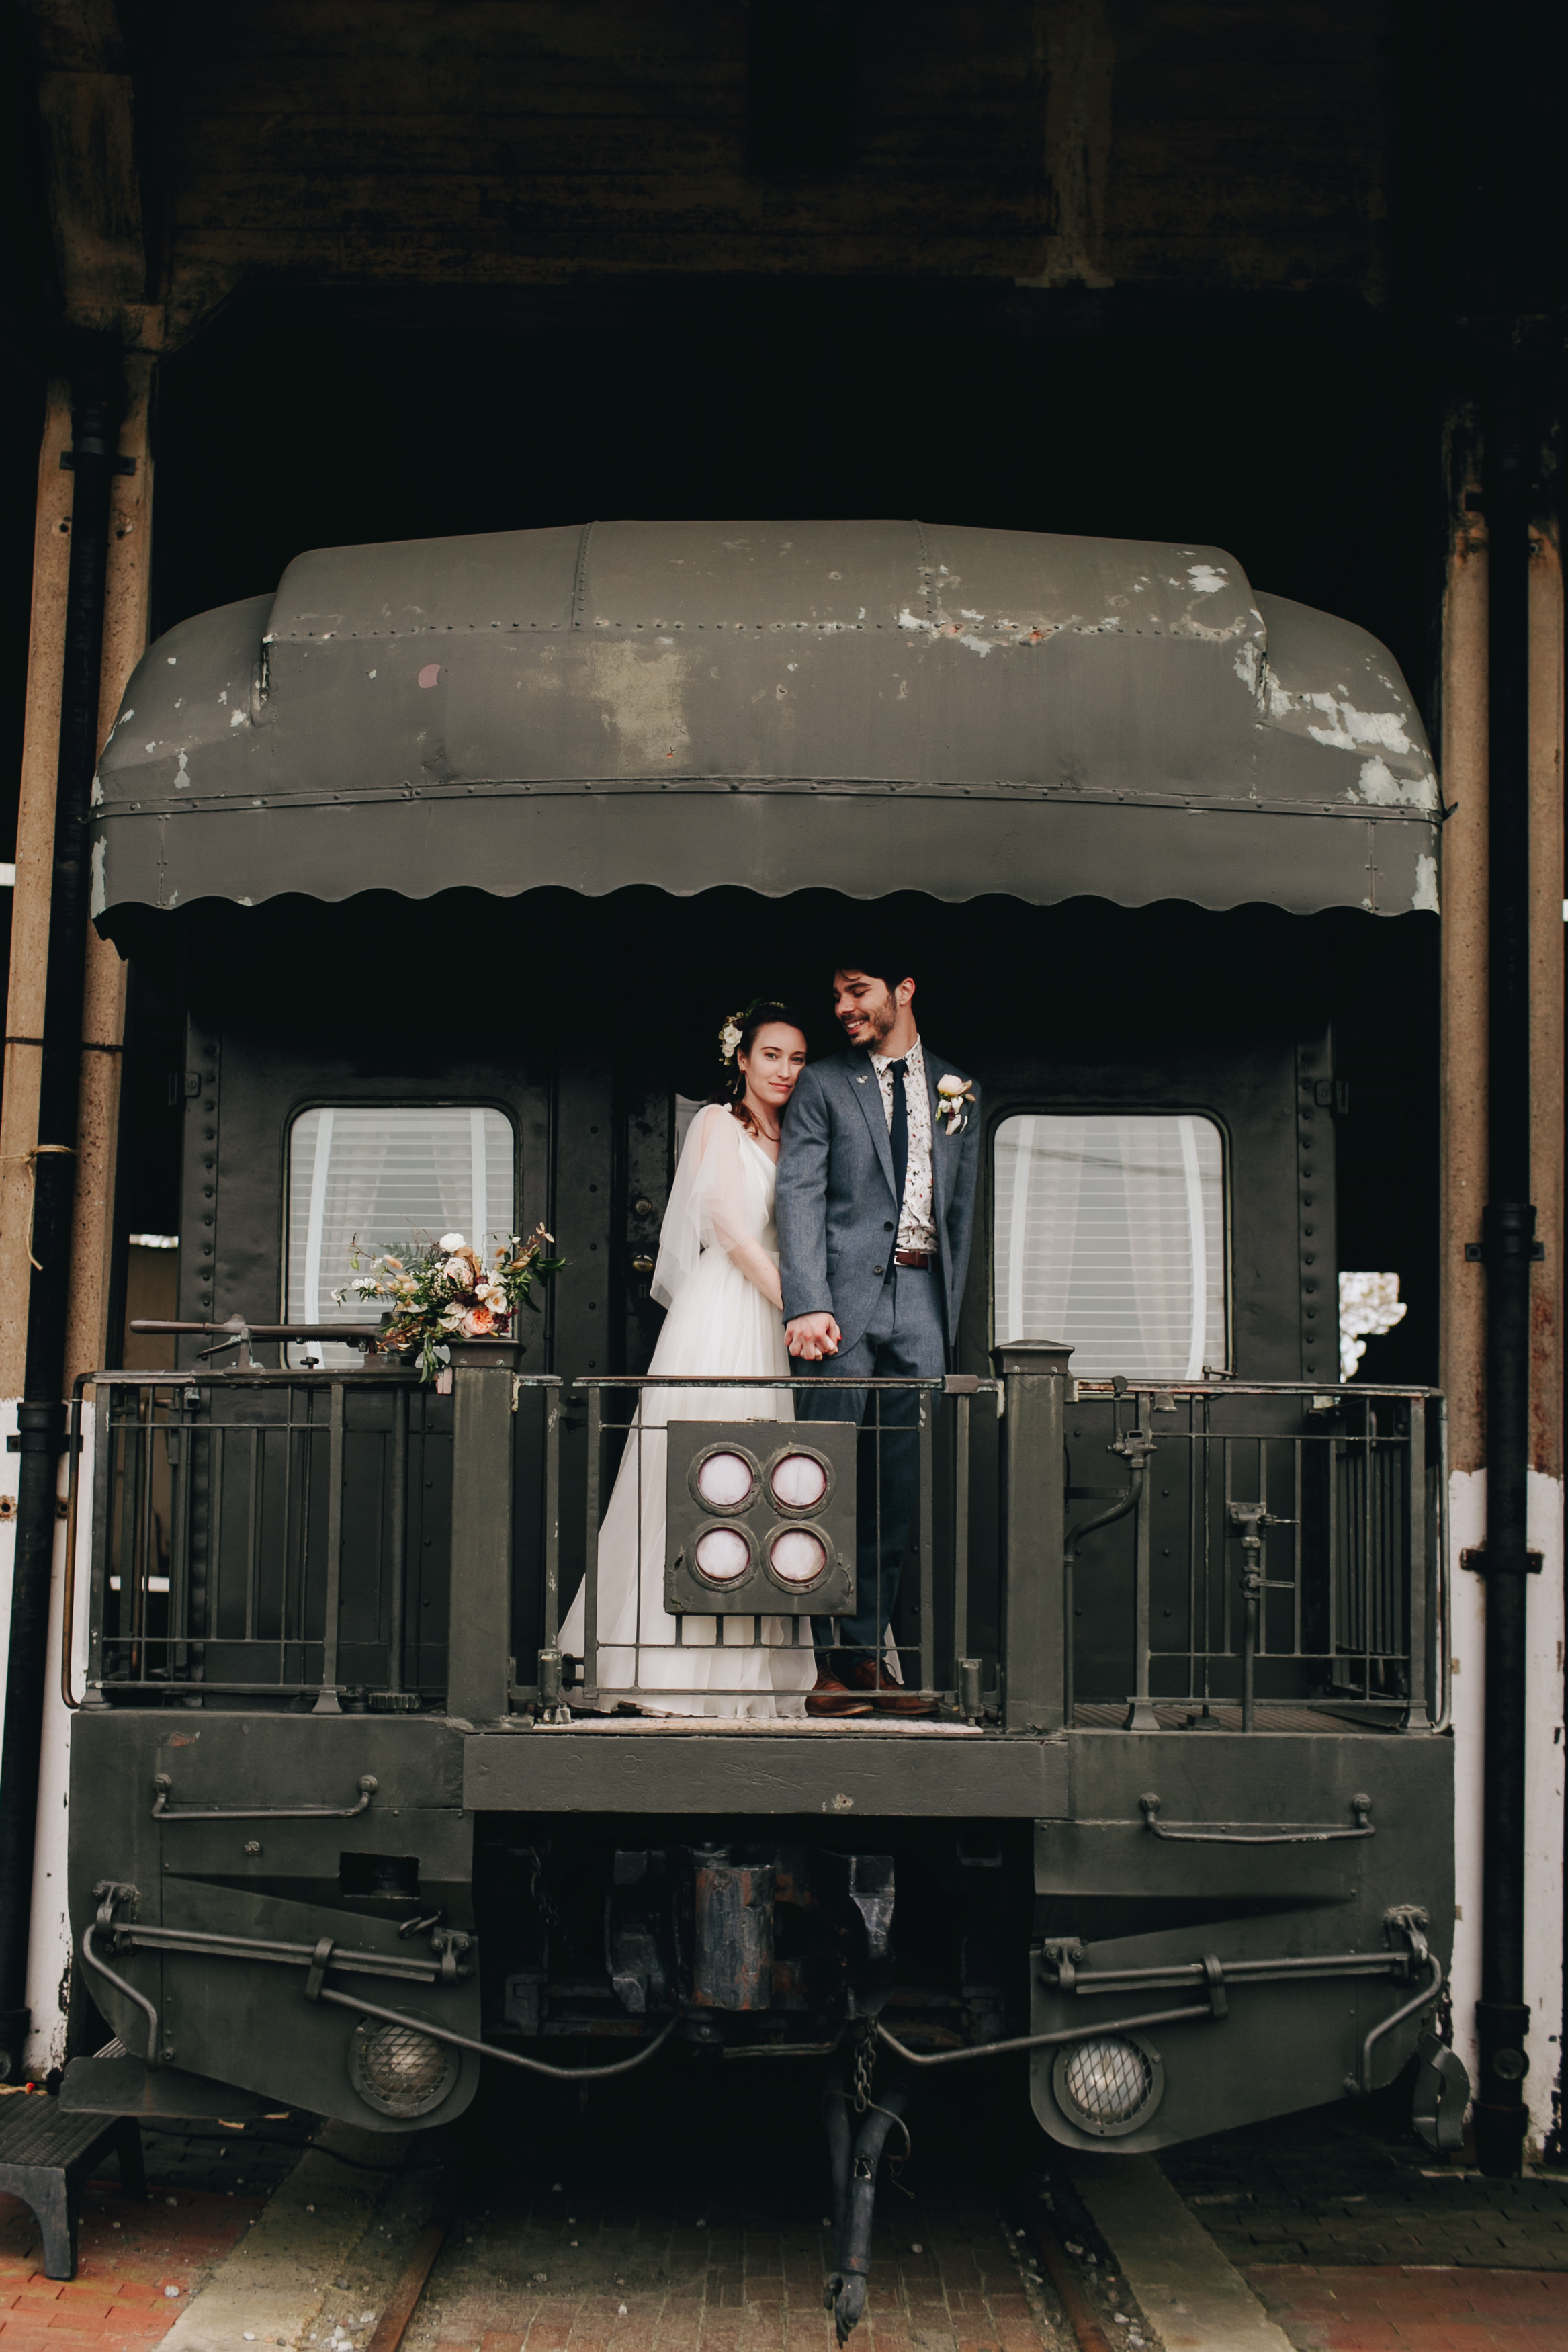 Photography Anthology - Savannah Wedding at Georgia State Railroad Museum (98 of 198).jpg